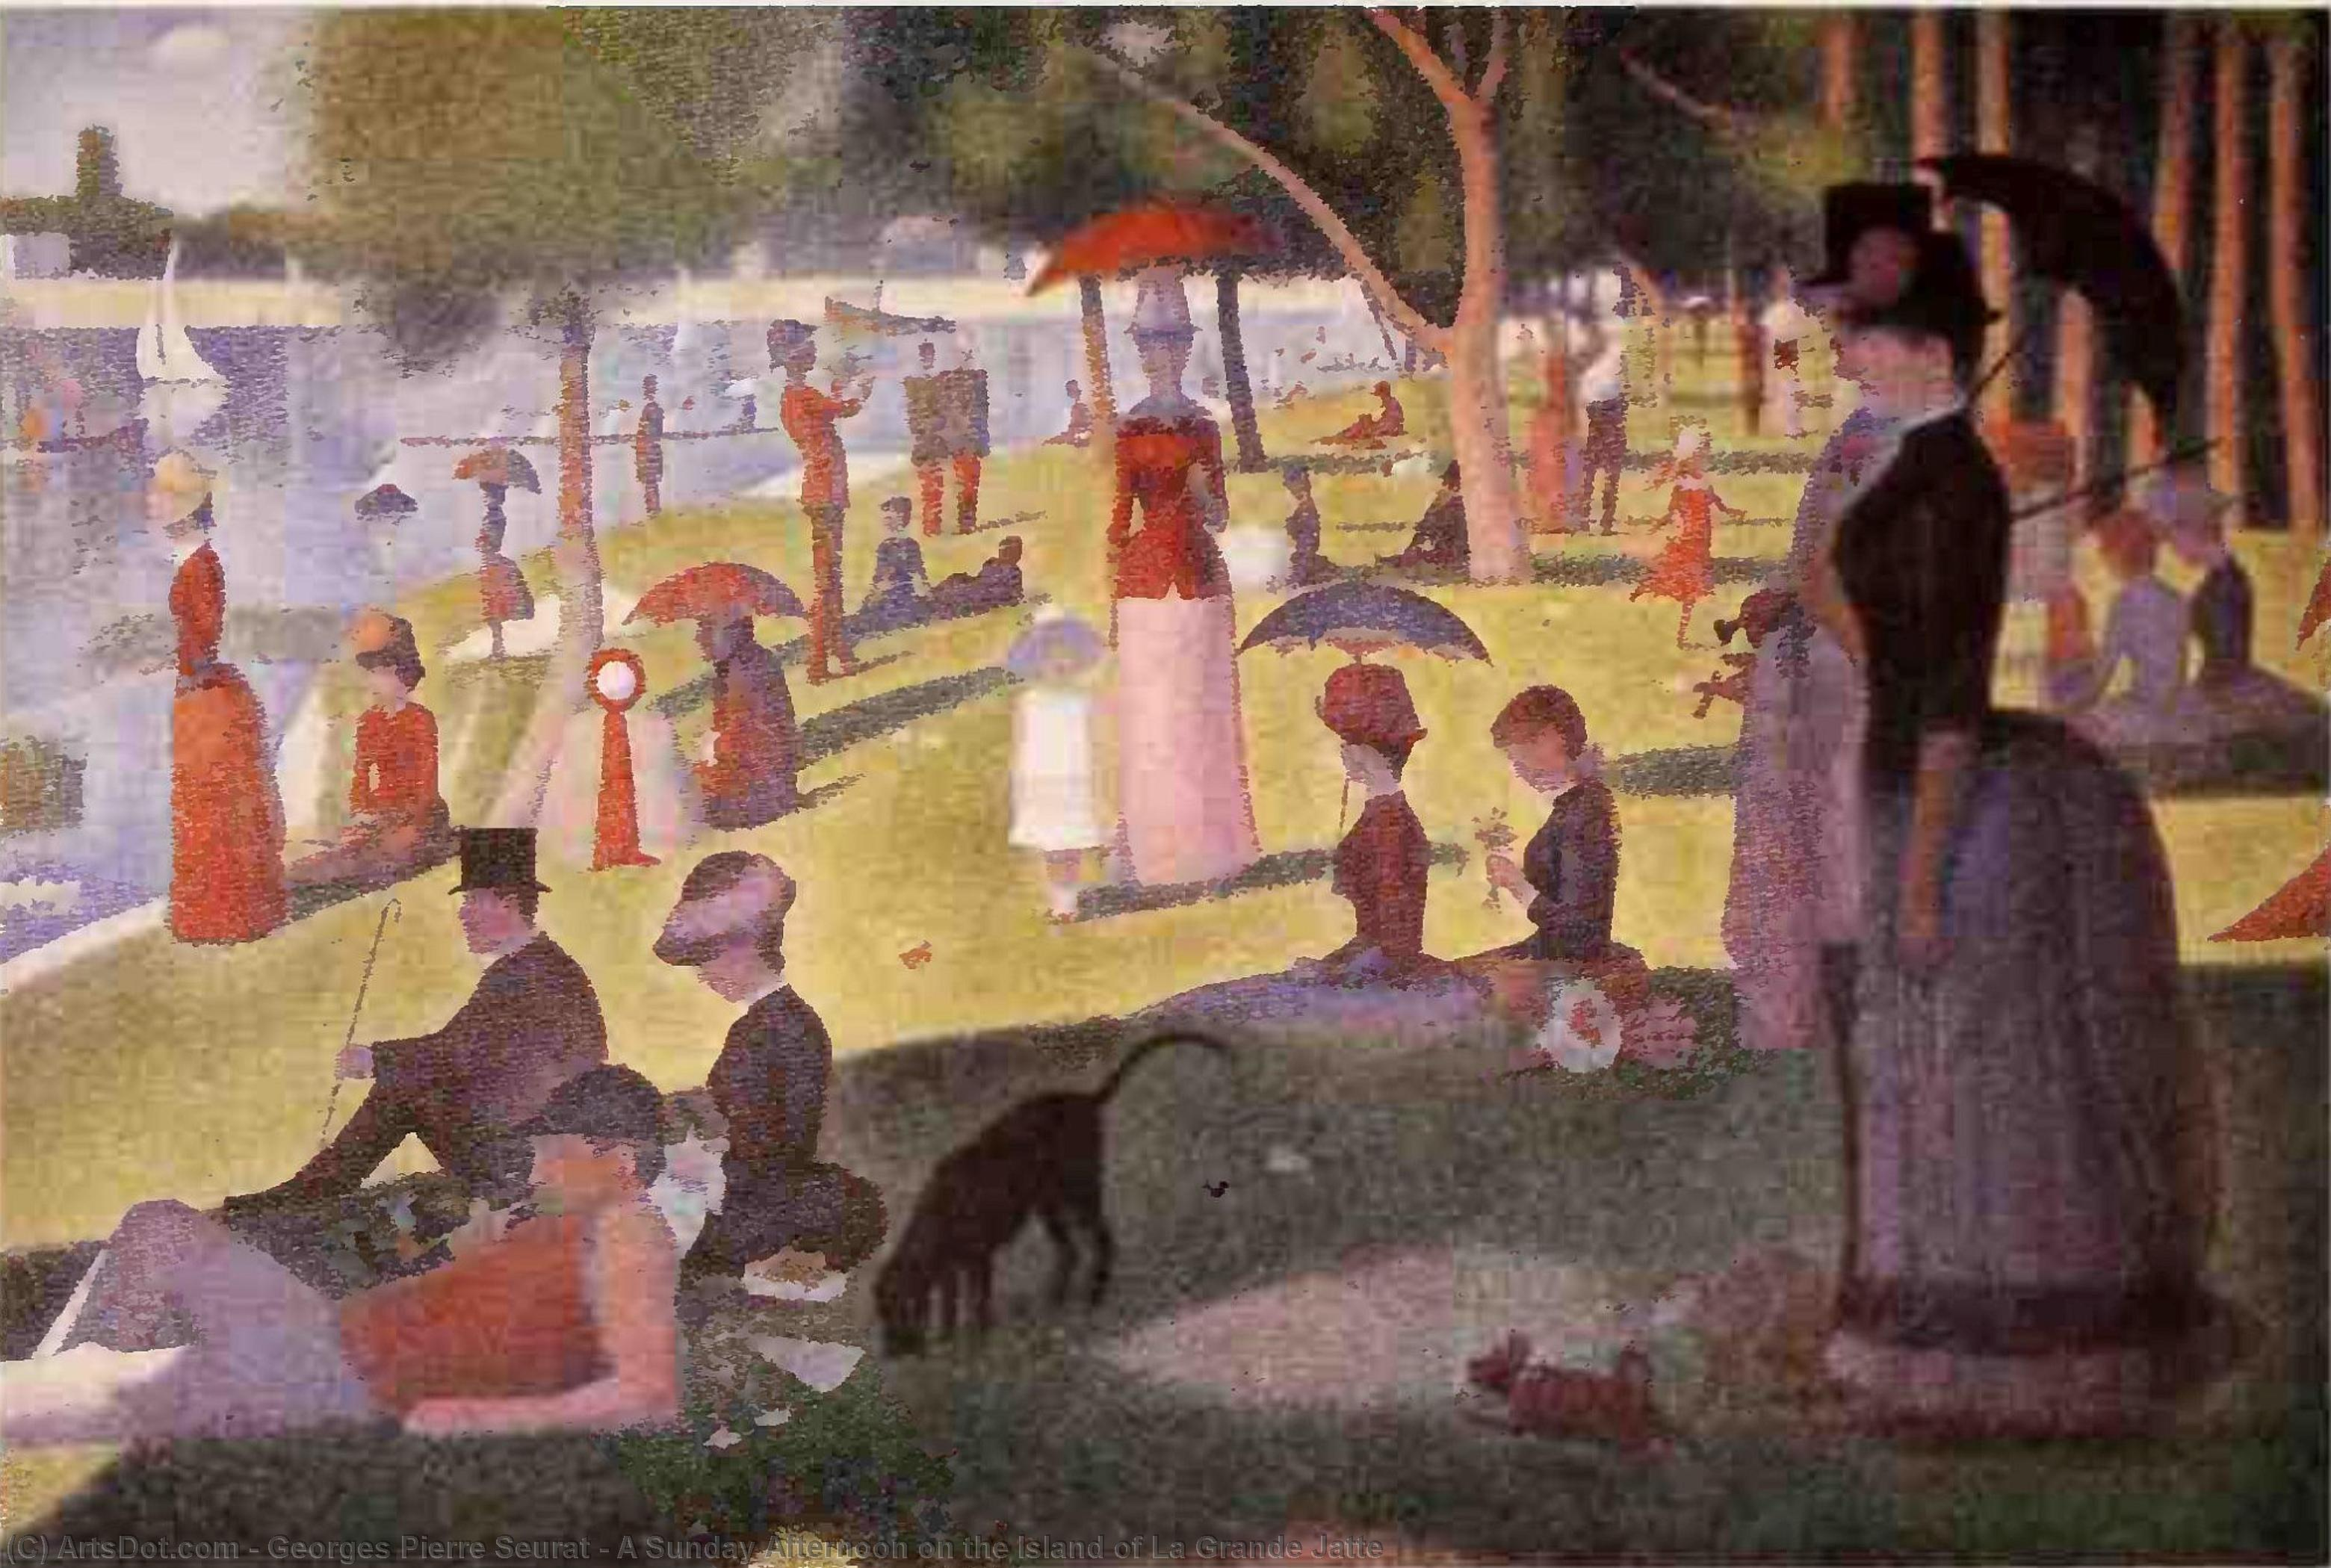 Wikioo.org - The Encyclopedia of Fine Arts - Painting, Artwork by Georges Pierre Seurat - A Sunday Afternoon on the Island of La Grande Jatte